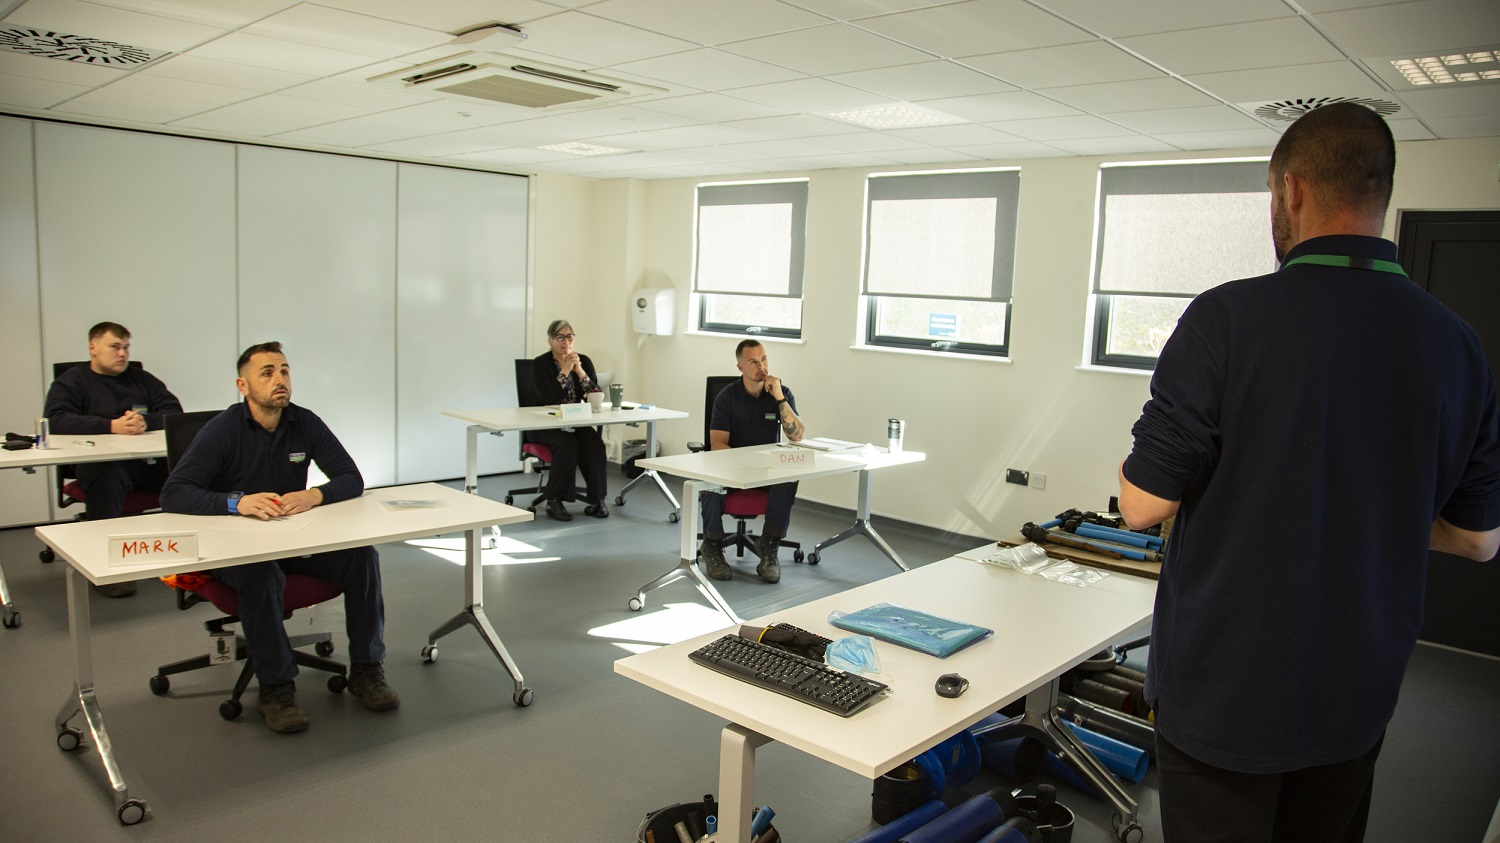 The academy combines traditional classroom-based learning with experimental training environments.